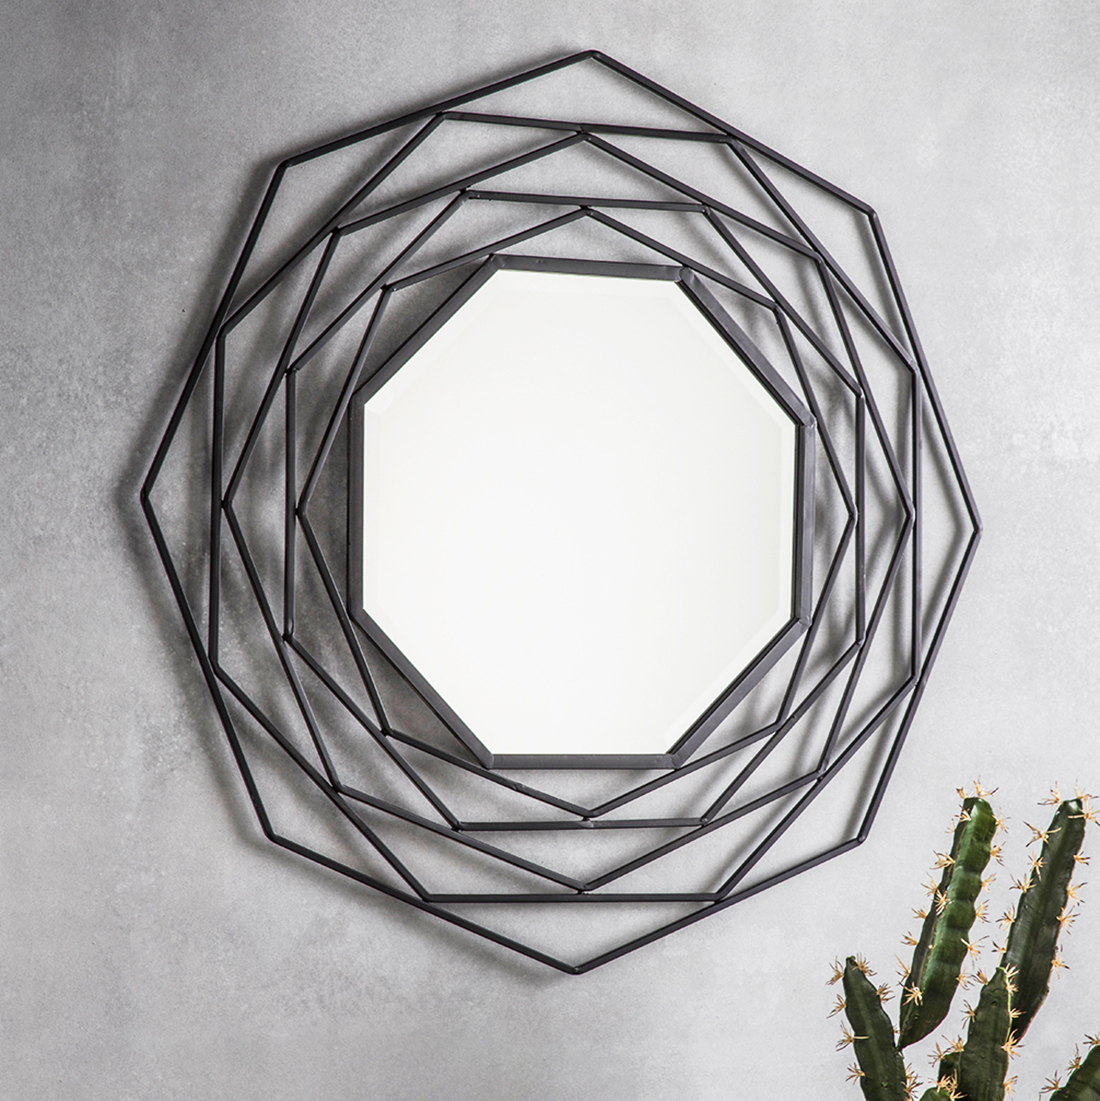 Newest Octagonal Black Geometric Wall Mirror Intended For Black Wall Mirrors (View 15 of 20)